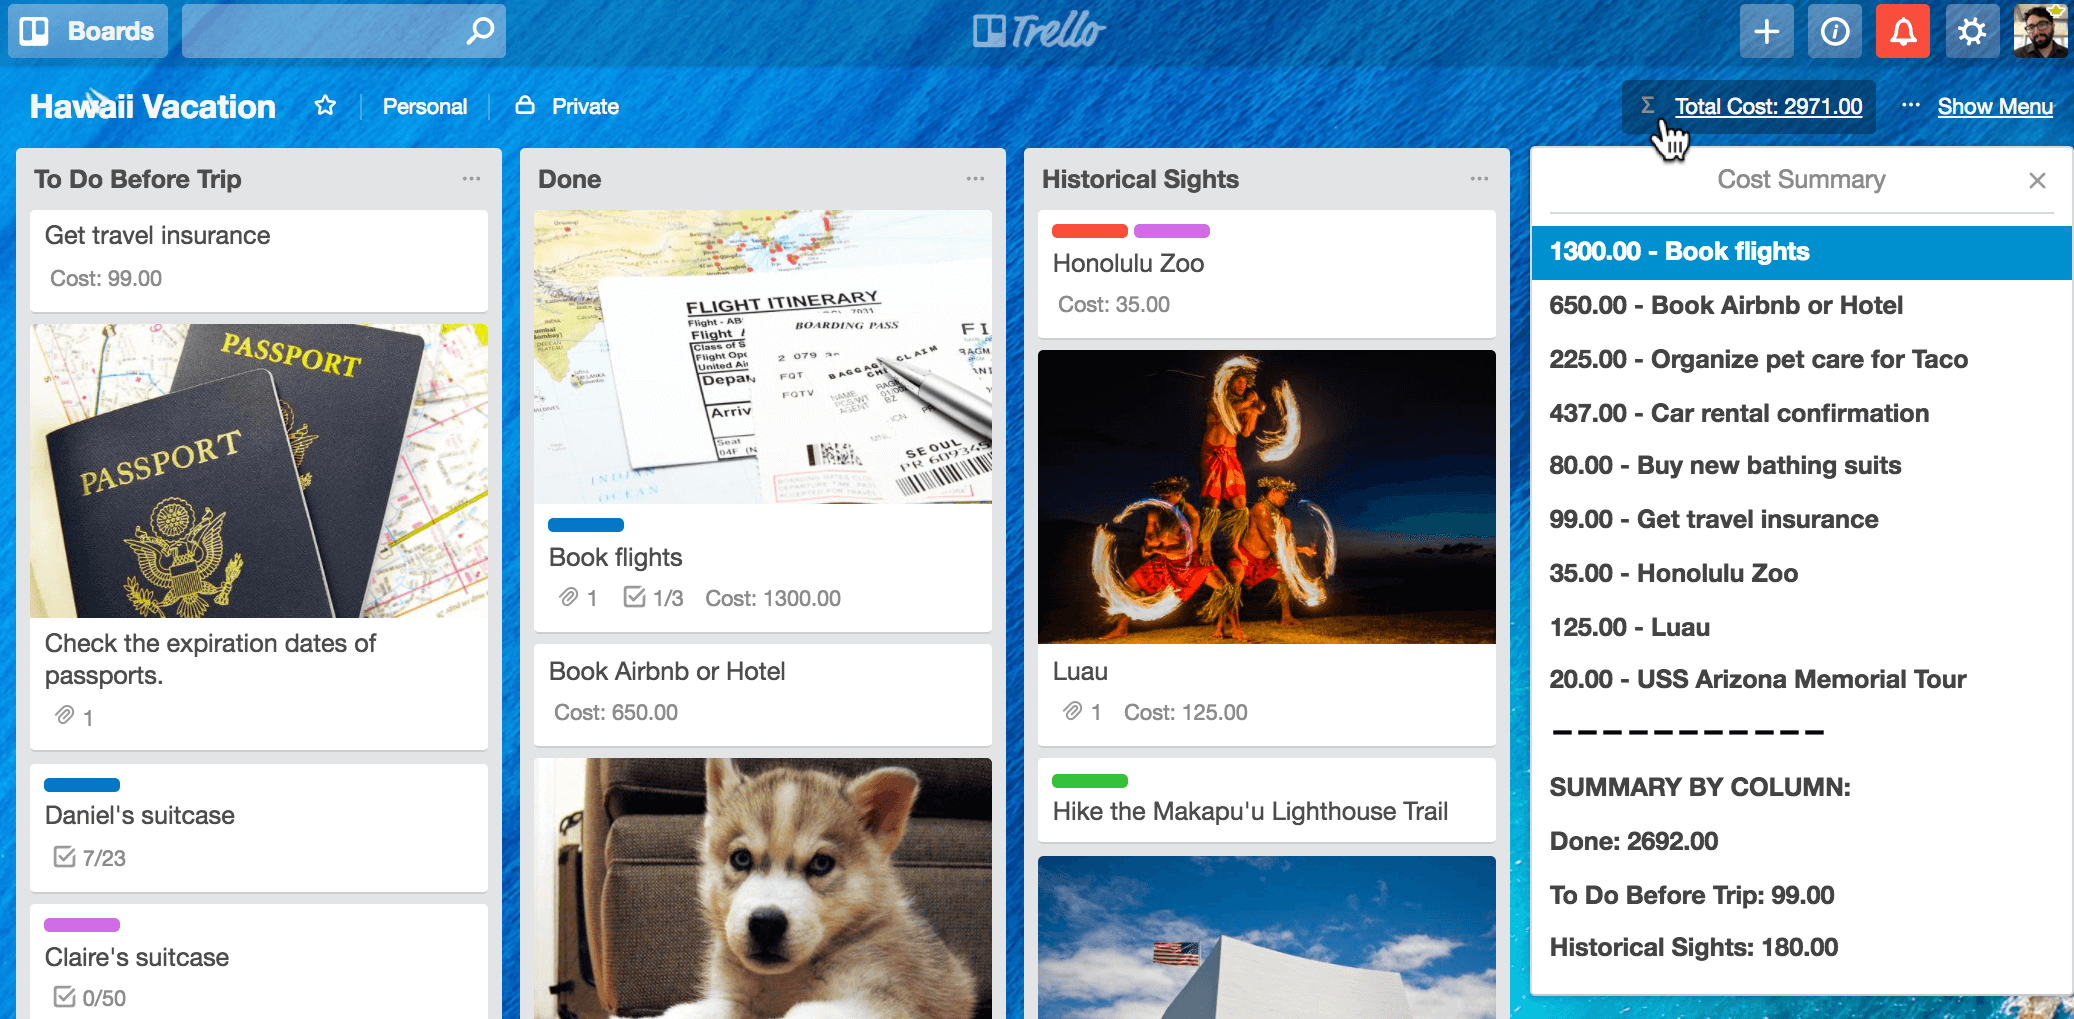 Tracking Expenses in Trello